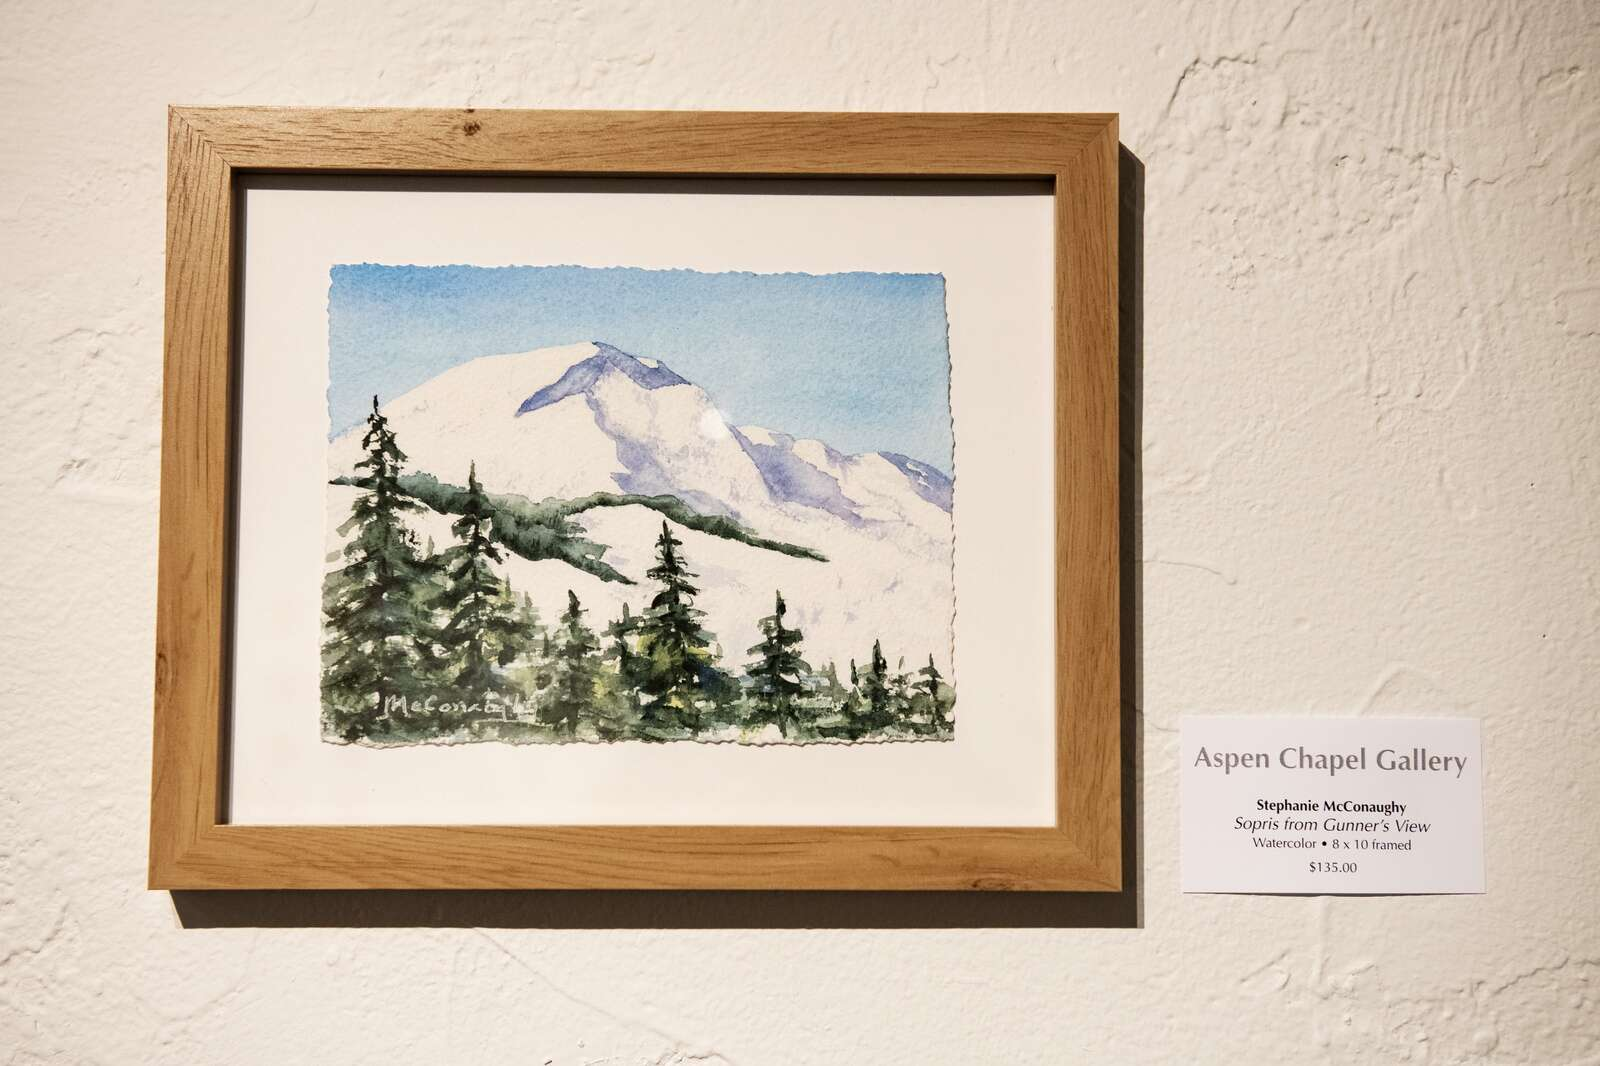 A watercolor painting by Stephanie McConaughy on Tuesday, Nov. 17, 2020. (Kelsey Brunner/The Aspen Times)